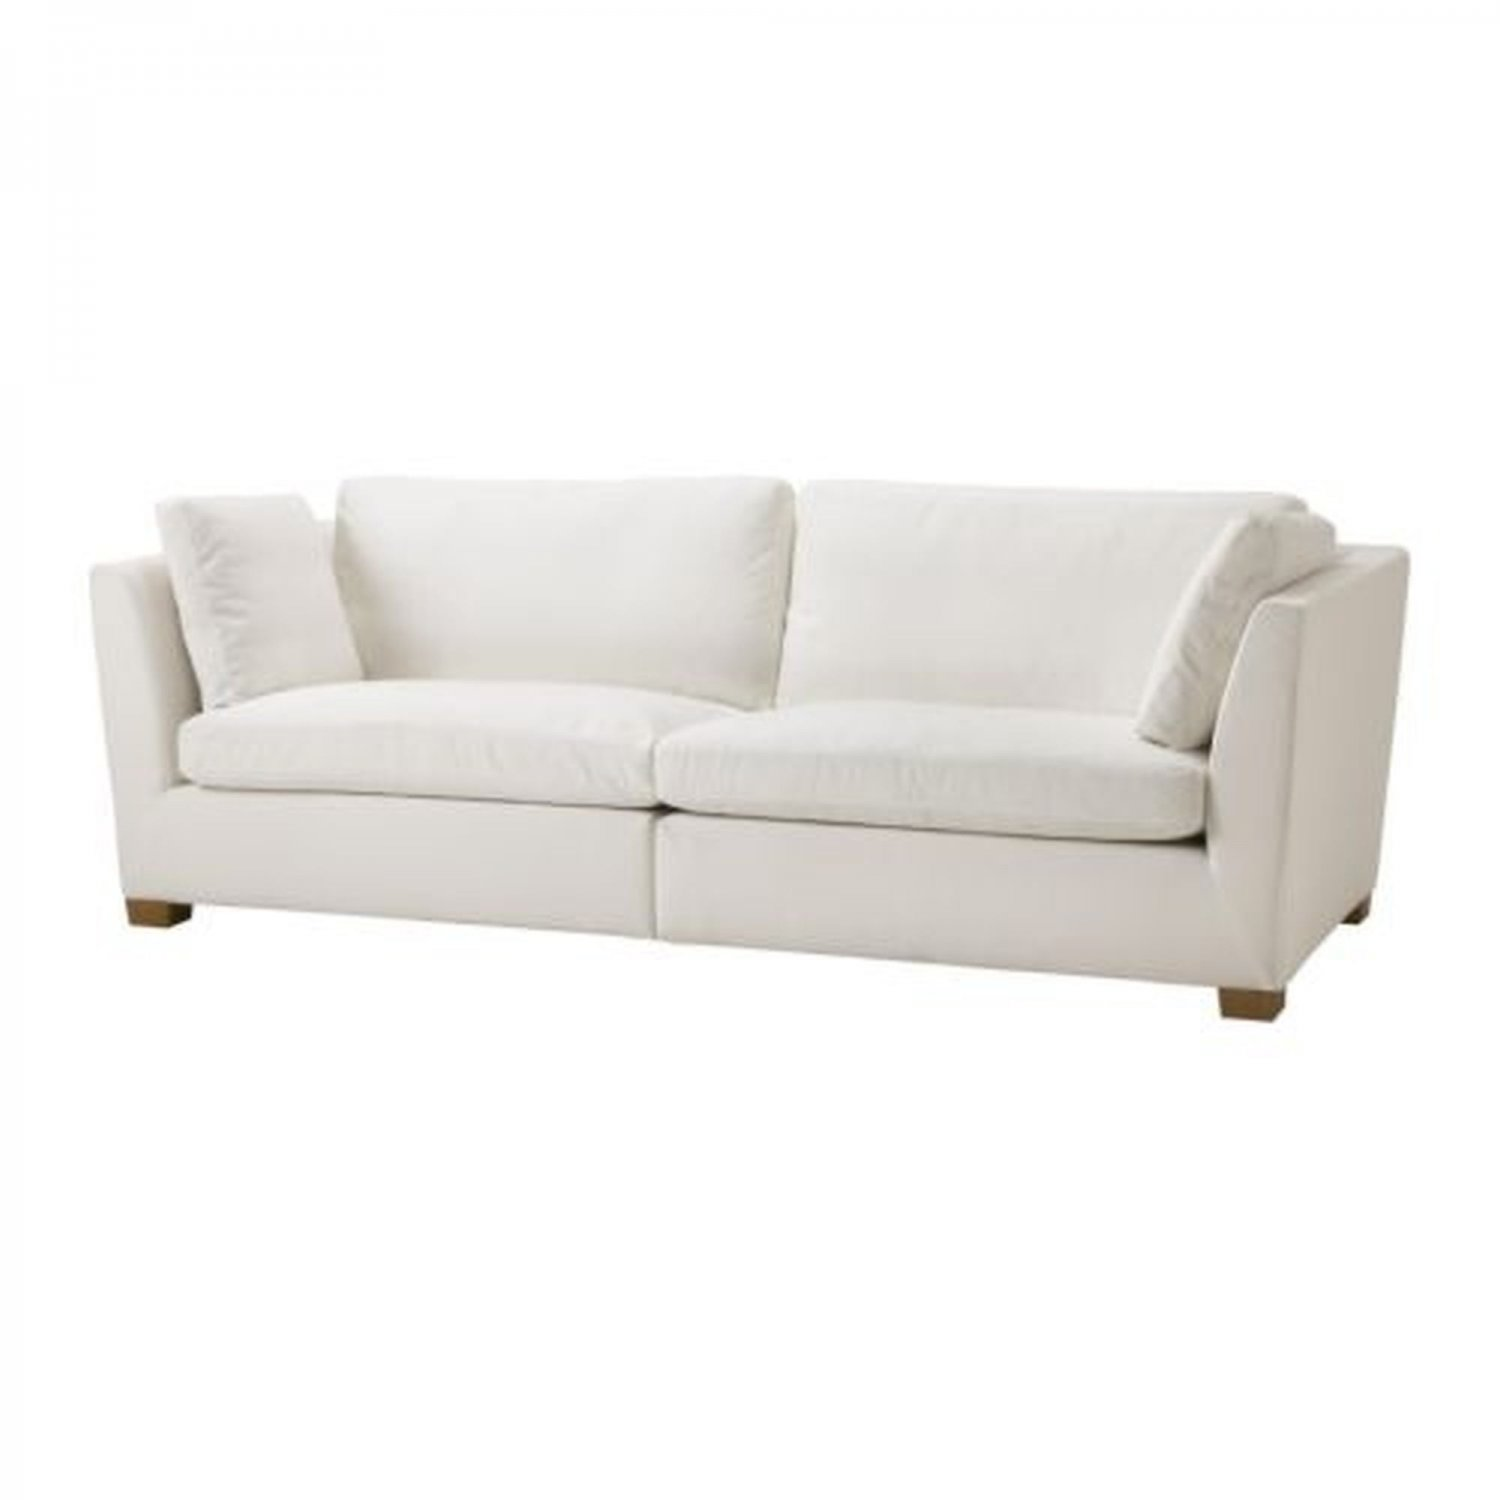 ikea stockholm 3 5 seat sofa slipcover cover rostanga white r st nga bezug housse. Black Bedroom Furniture Sets. Home Design Ideas